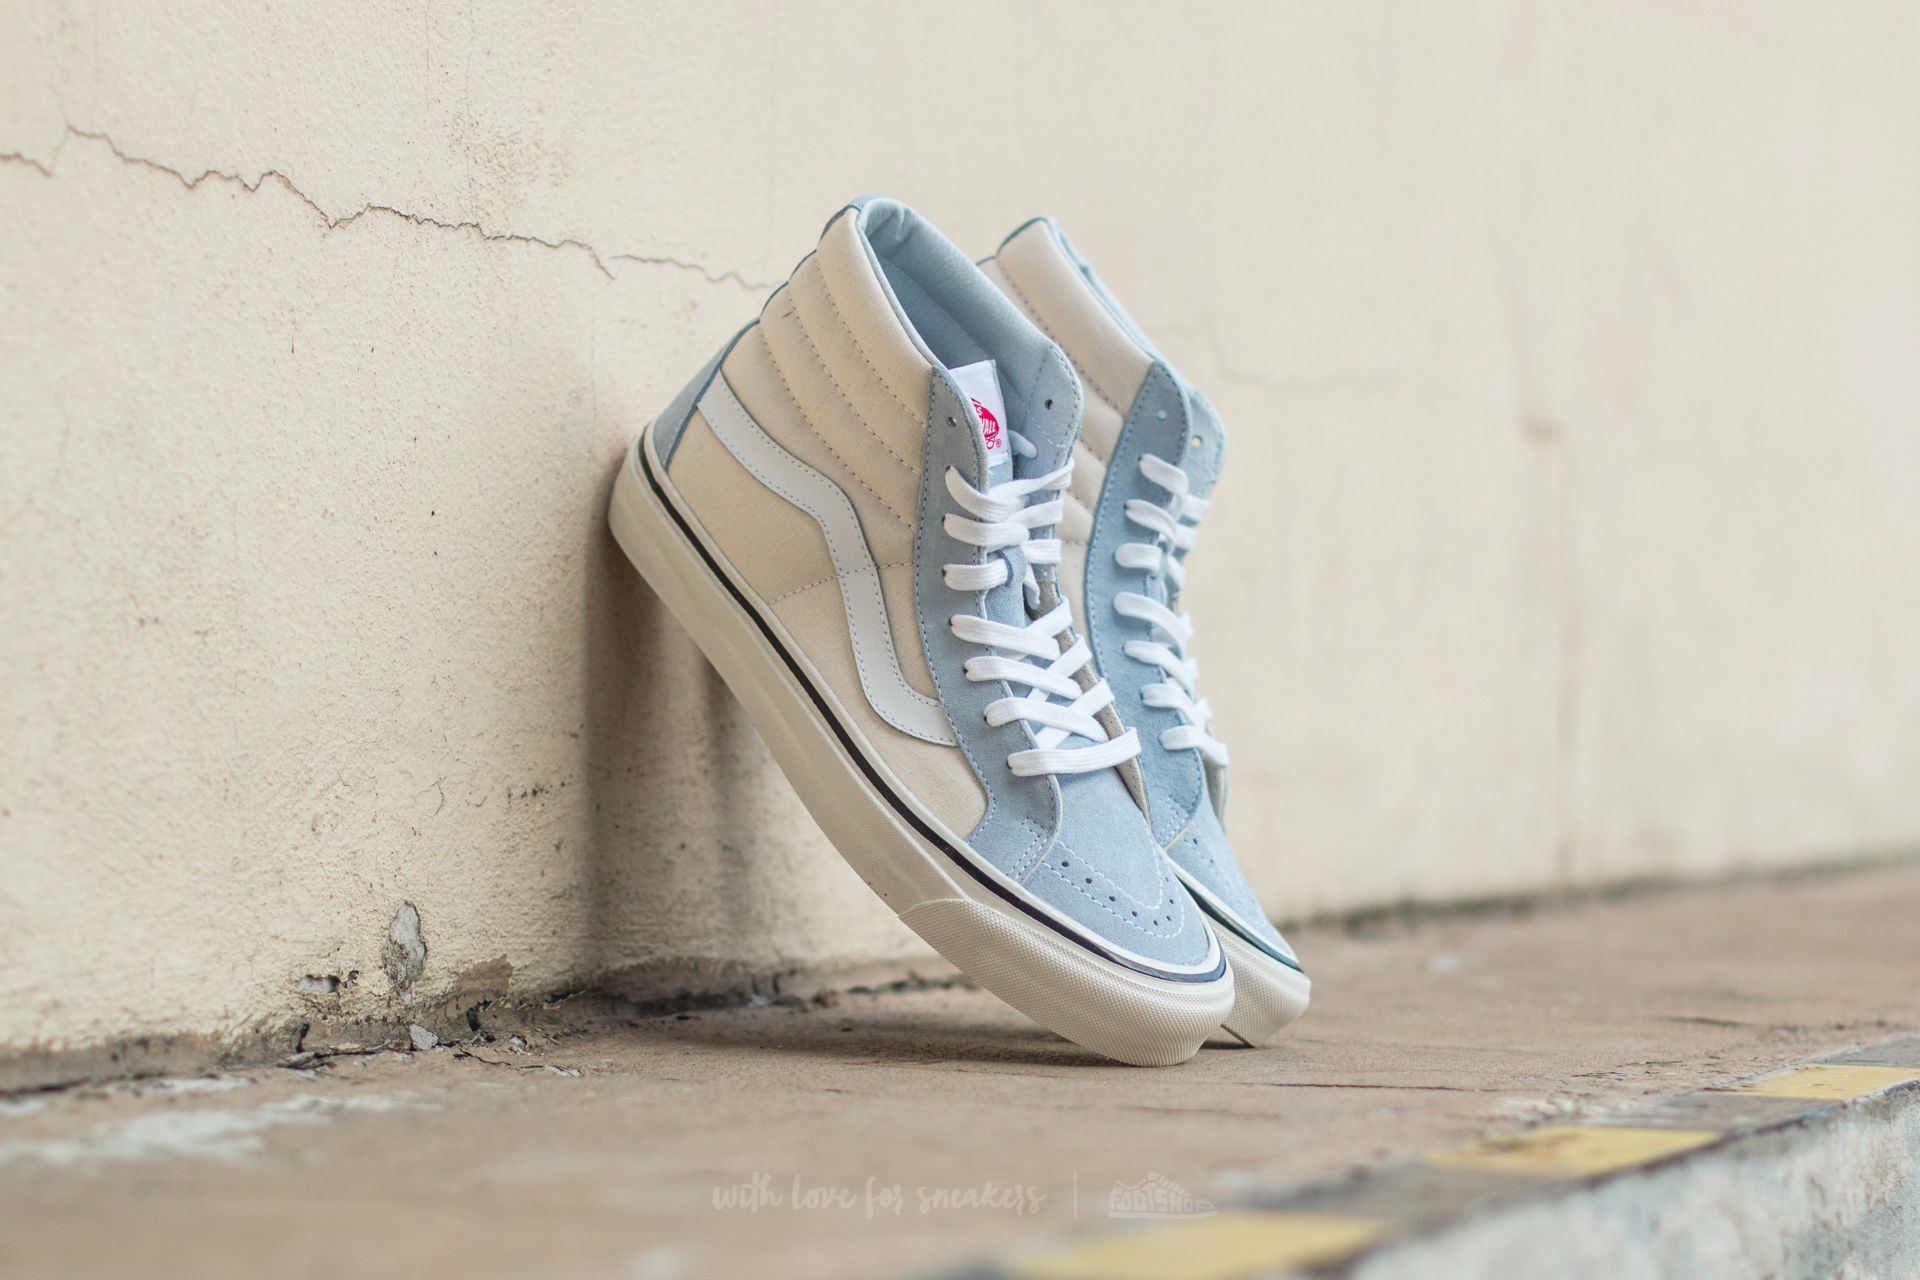 8d890cce1f7549 Vans Sk8-Hi 38 DX (Anaheim Factory) Light Blue  True White